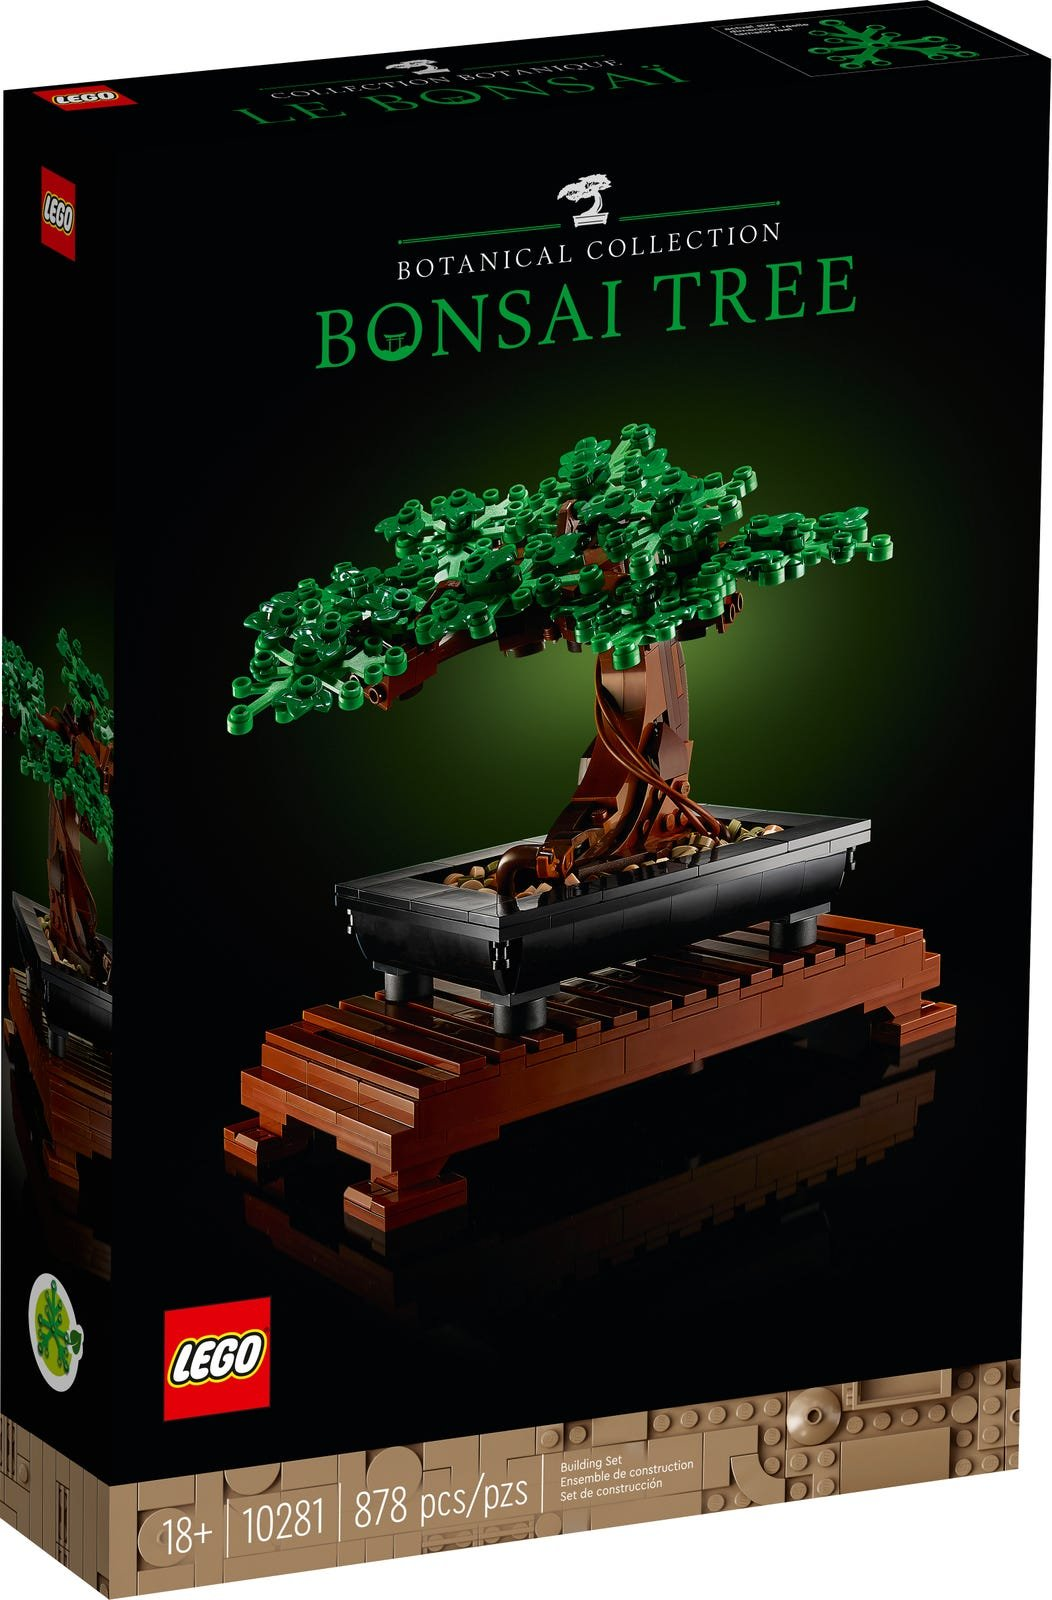 The Best Prices Today For Bonsai Tree Toybricksfinder